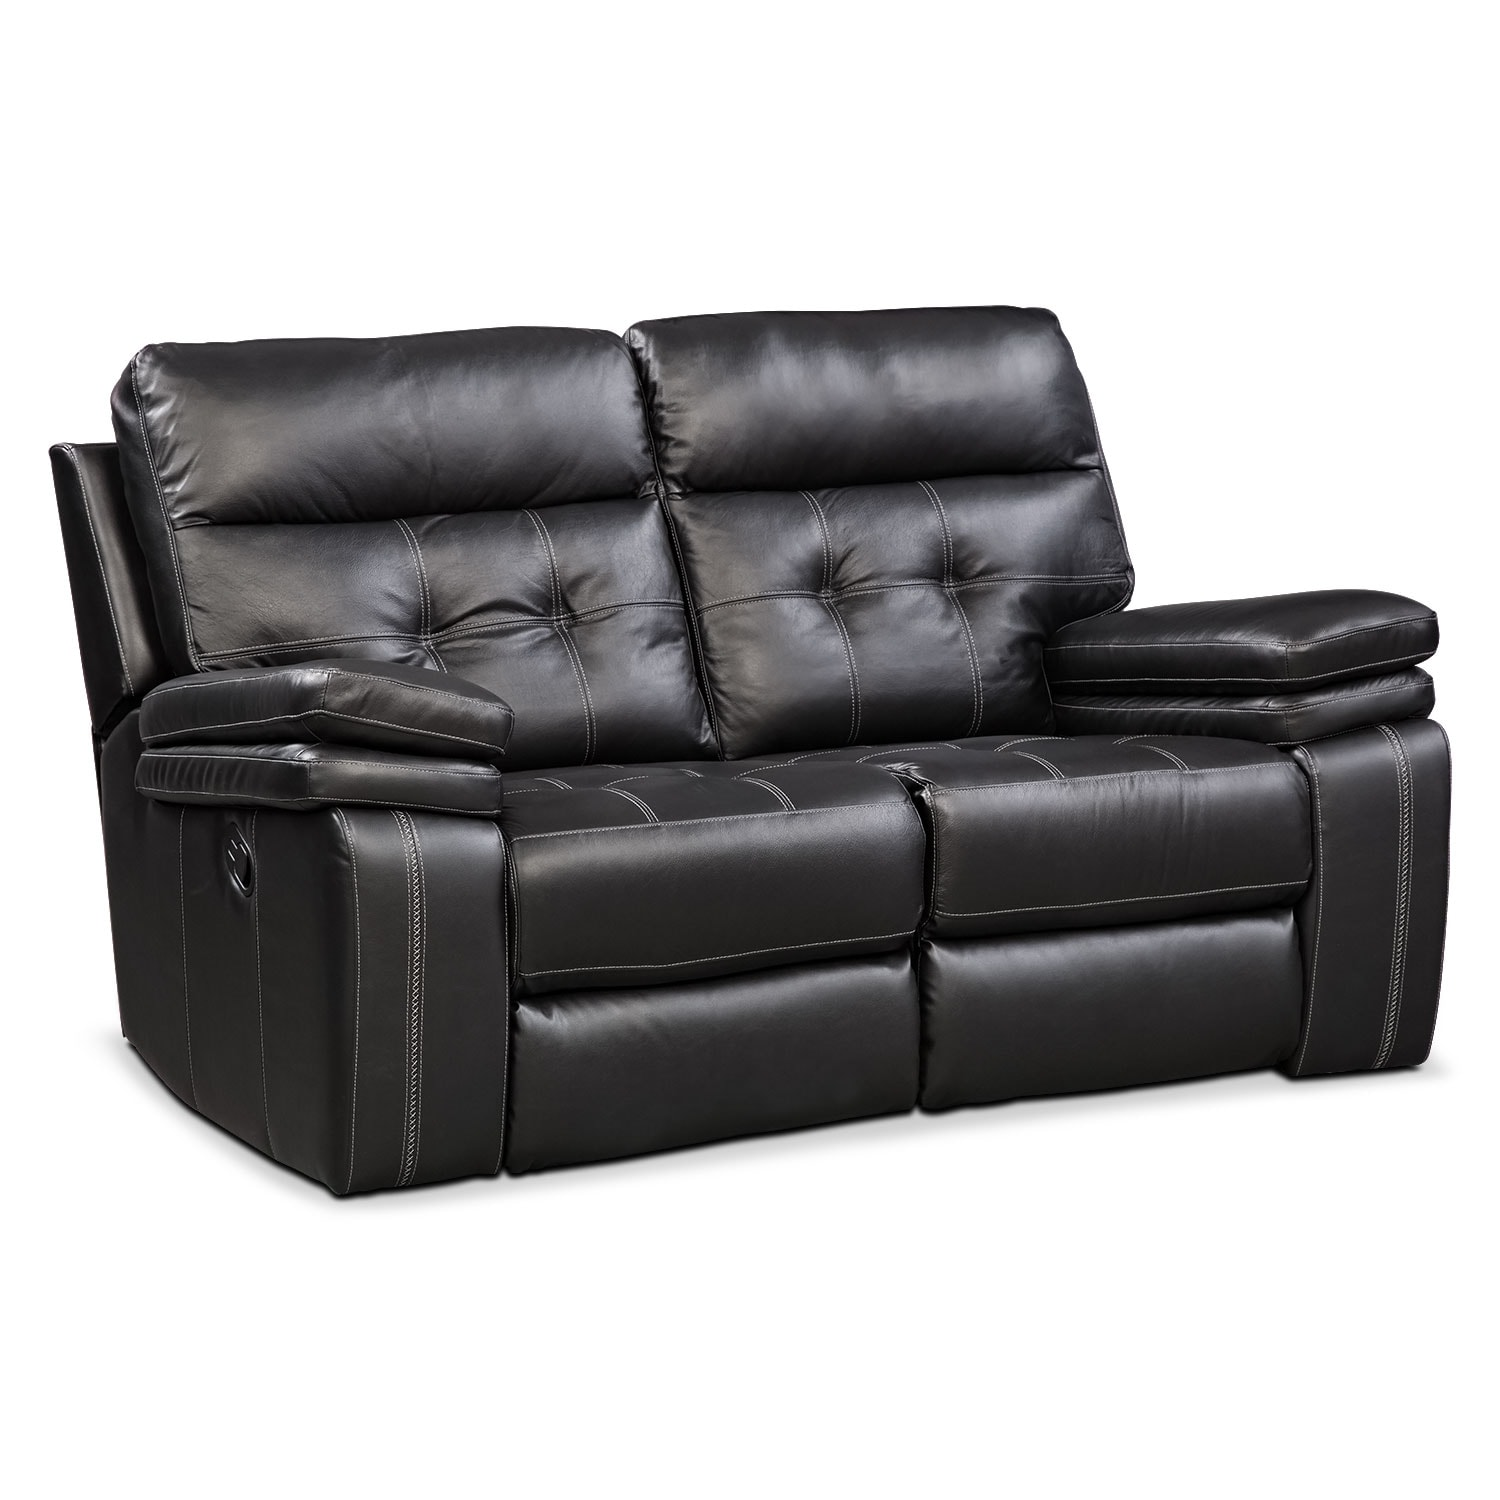 Brisco Black Manual Reclining Loveseat